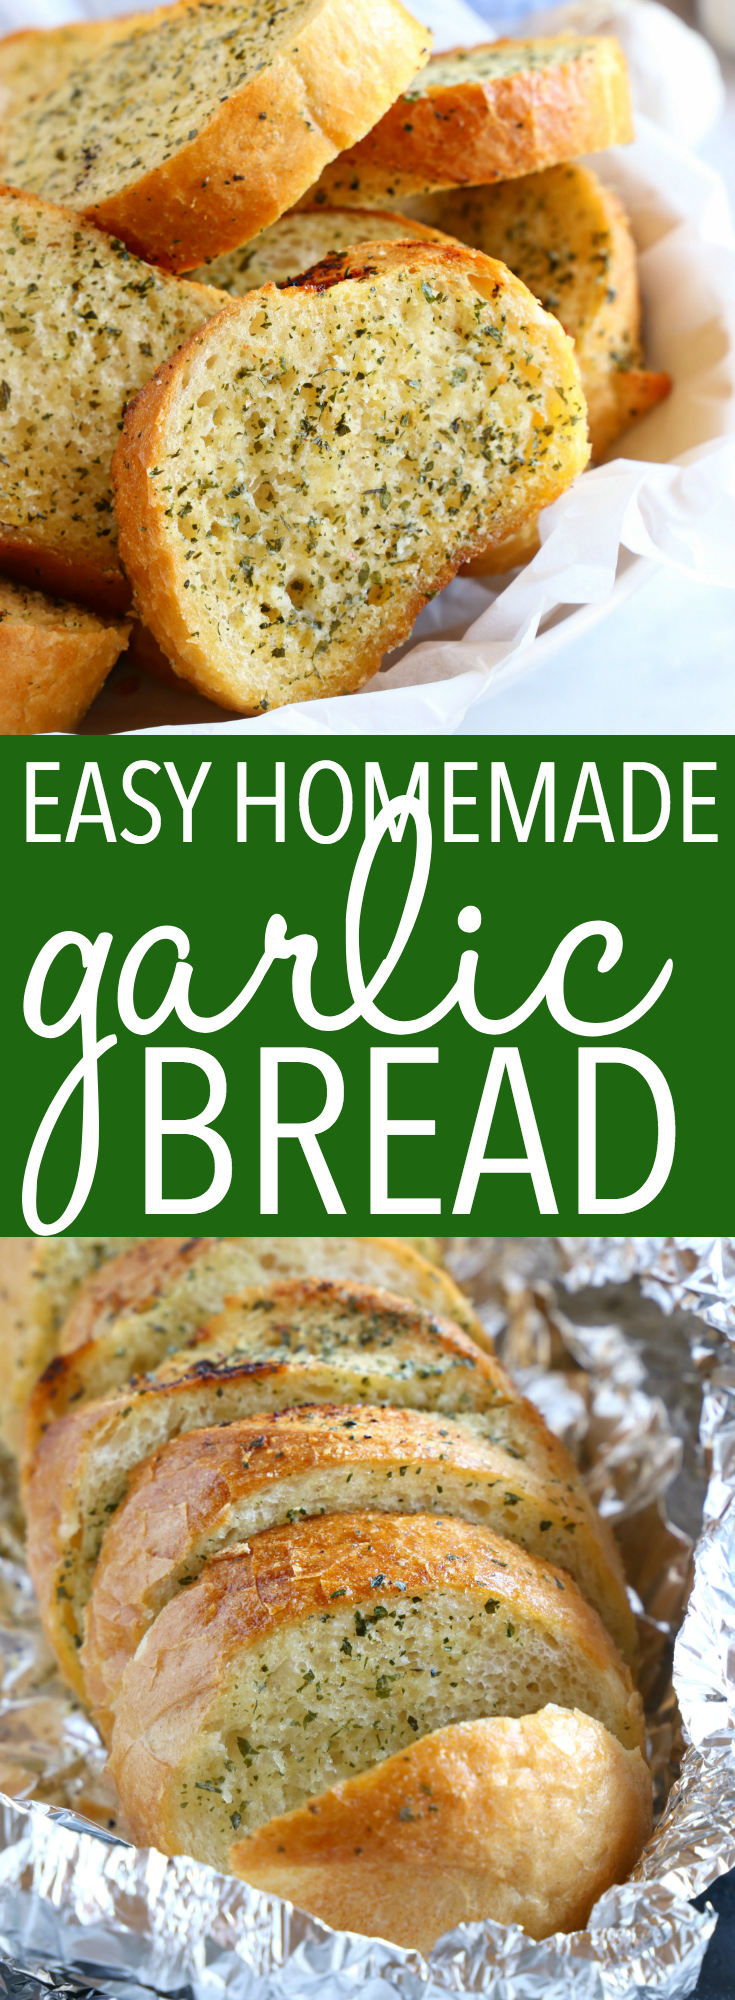 This Easy Homemade Garlic Bread belongs on every family's table! It's SO easy to make and it's delicious alongside your favourite Italian dishes! Recipe from thebusybaker.ca! #garlic #bread #homamade #easy #recipe #italian #spaghetti #sidedish #garlicbread #homemadebread #oven #baked #herbs via @busybakerblog